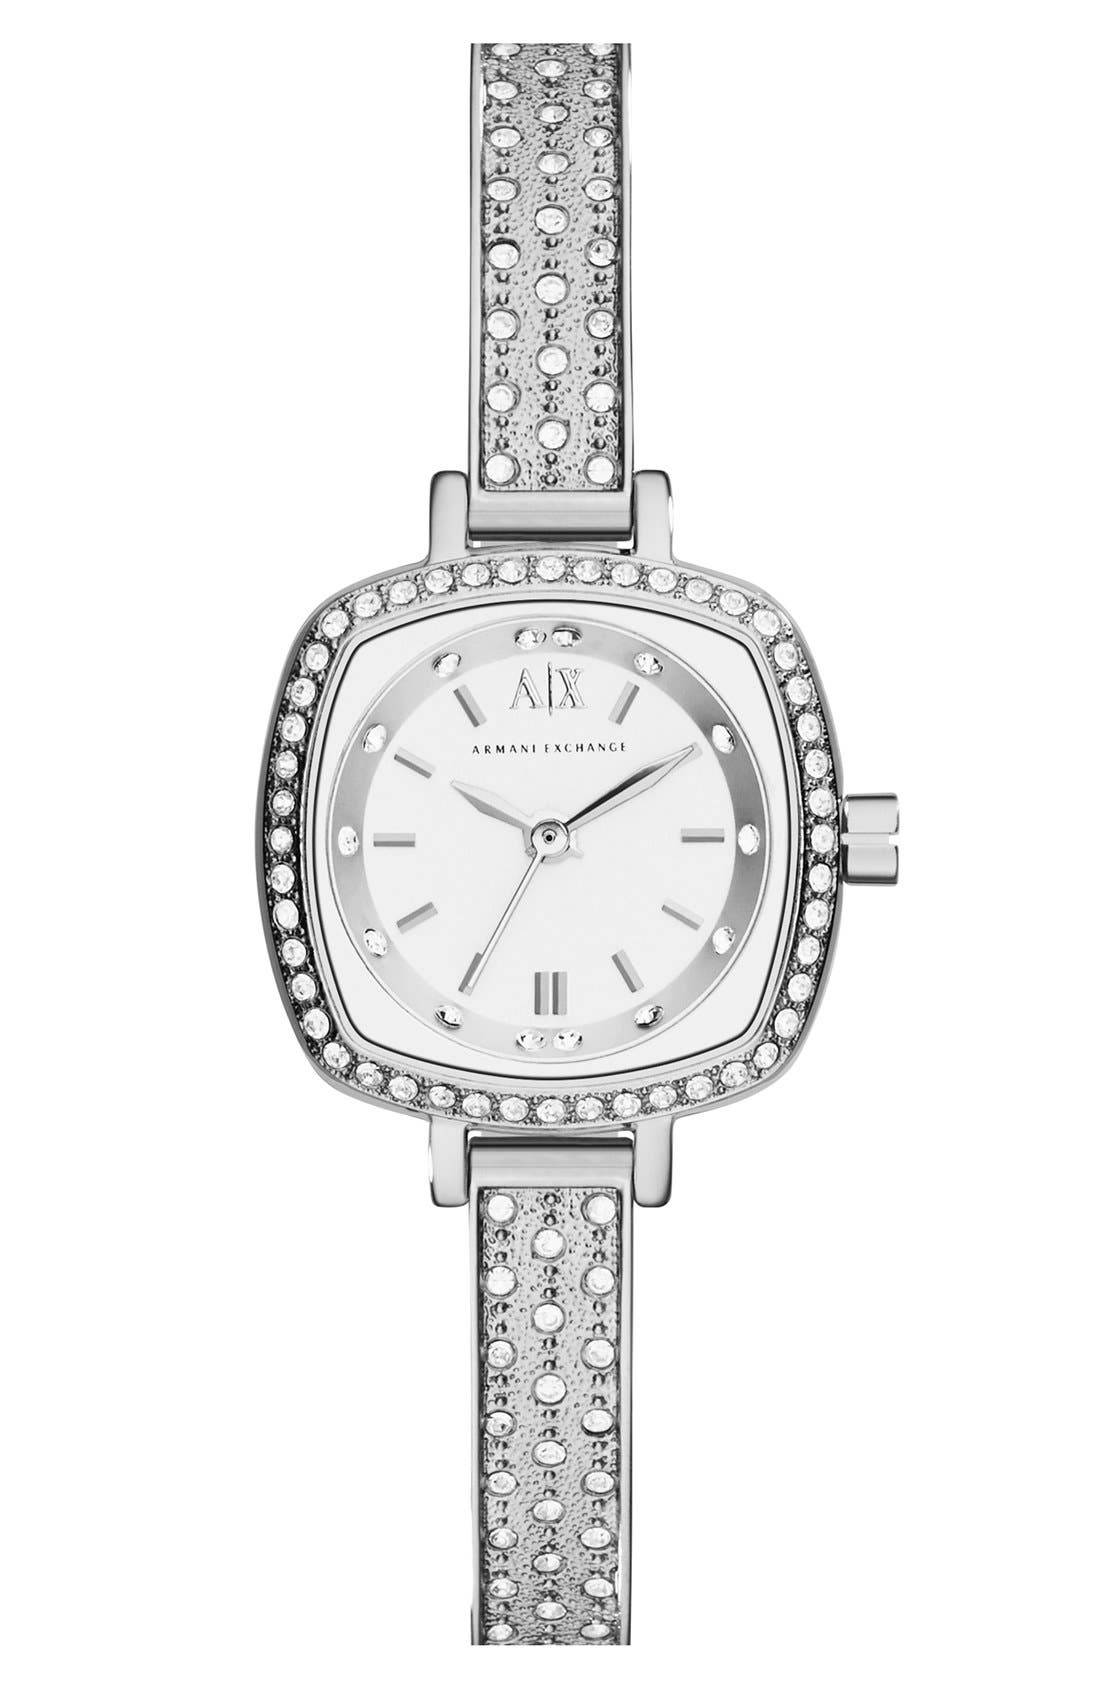 Alternate Image 1 Selected - AX Armani Exchange Crystal Encrusted Bangle Watch, 22mm